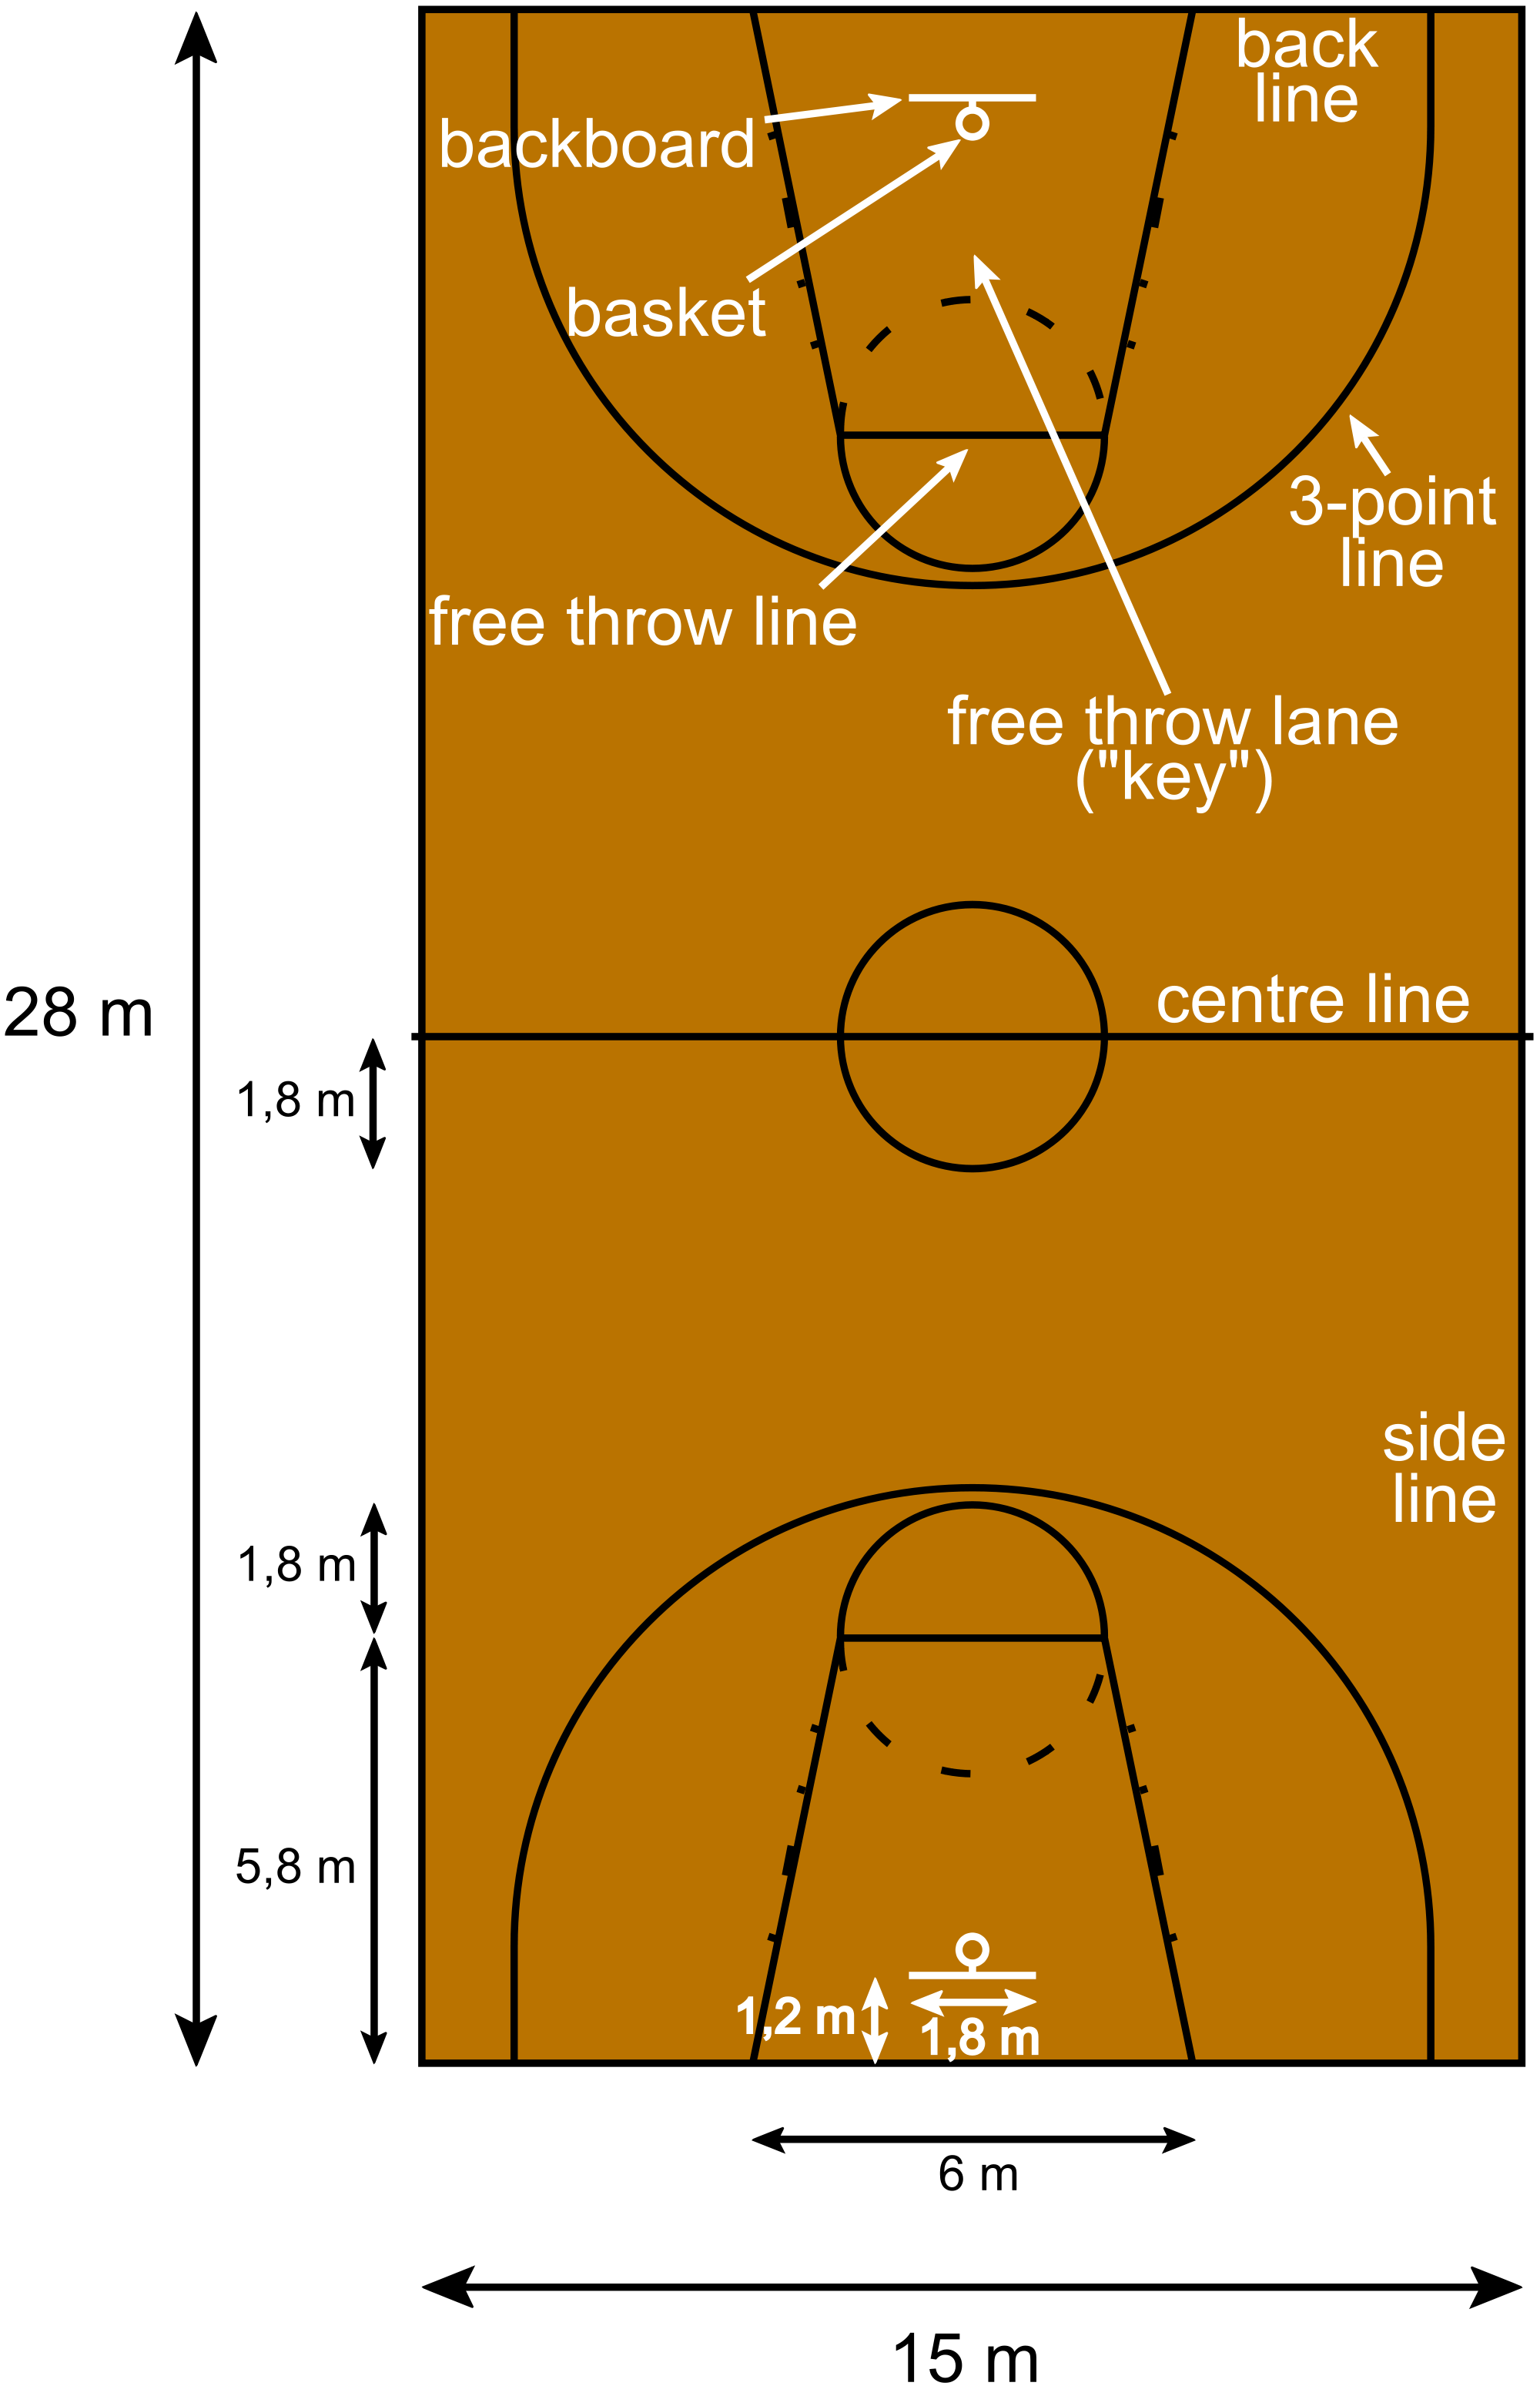 Basketball court floor clipart clip art freeuse library 28+ Collection of Basketball Court Drawing Board | High quality ... clip art freeuse library